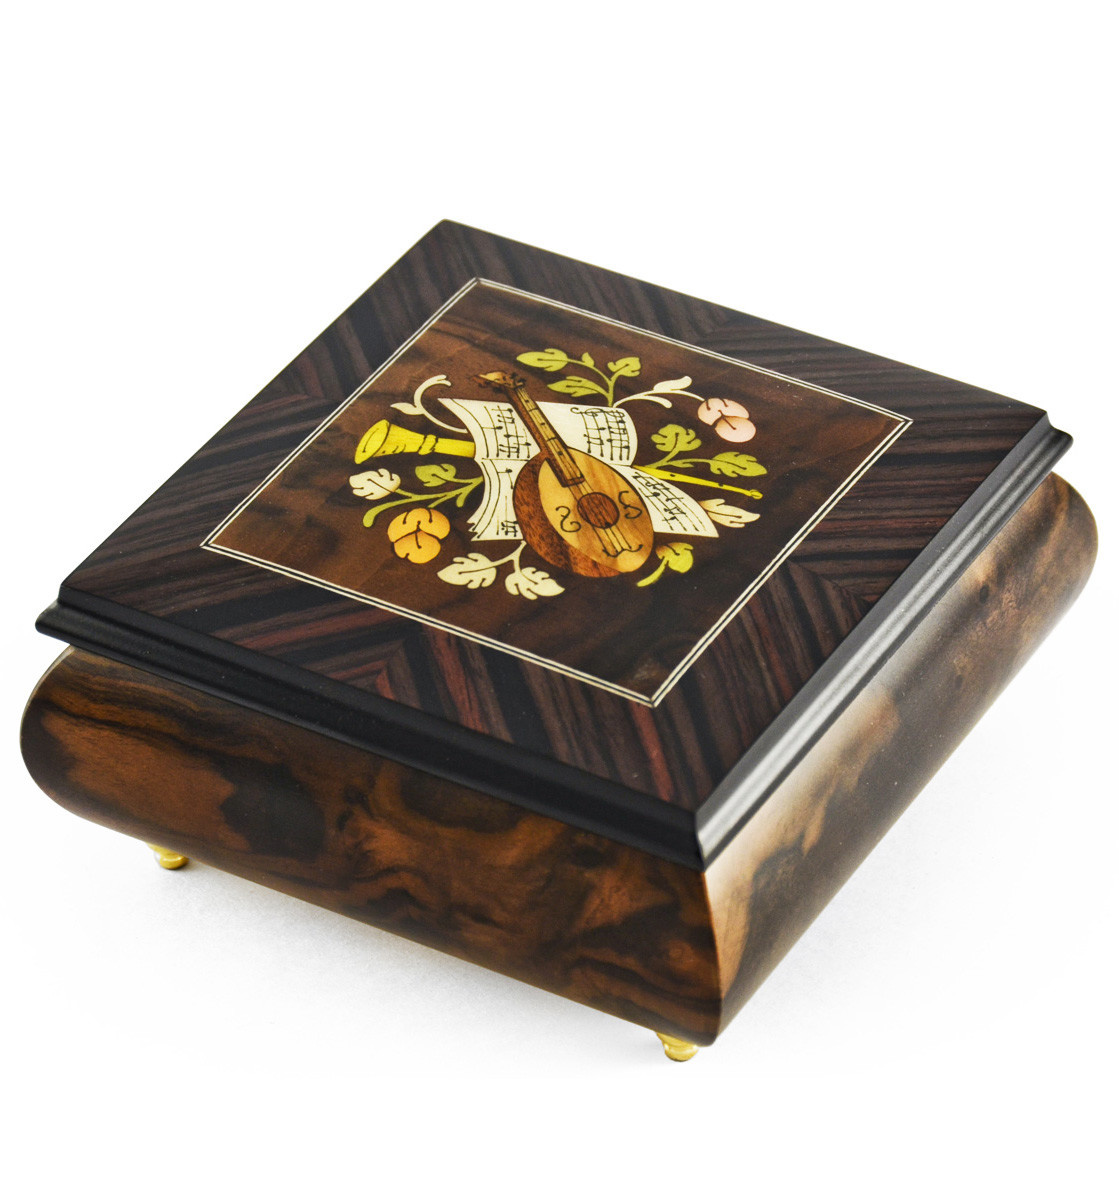 Giglio Asla Music box, burl walnut & rosewood, with inlaid lute, Magic Flute melody, Sorrento, ITALY